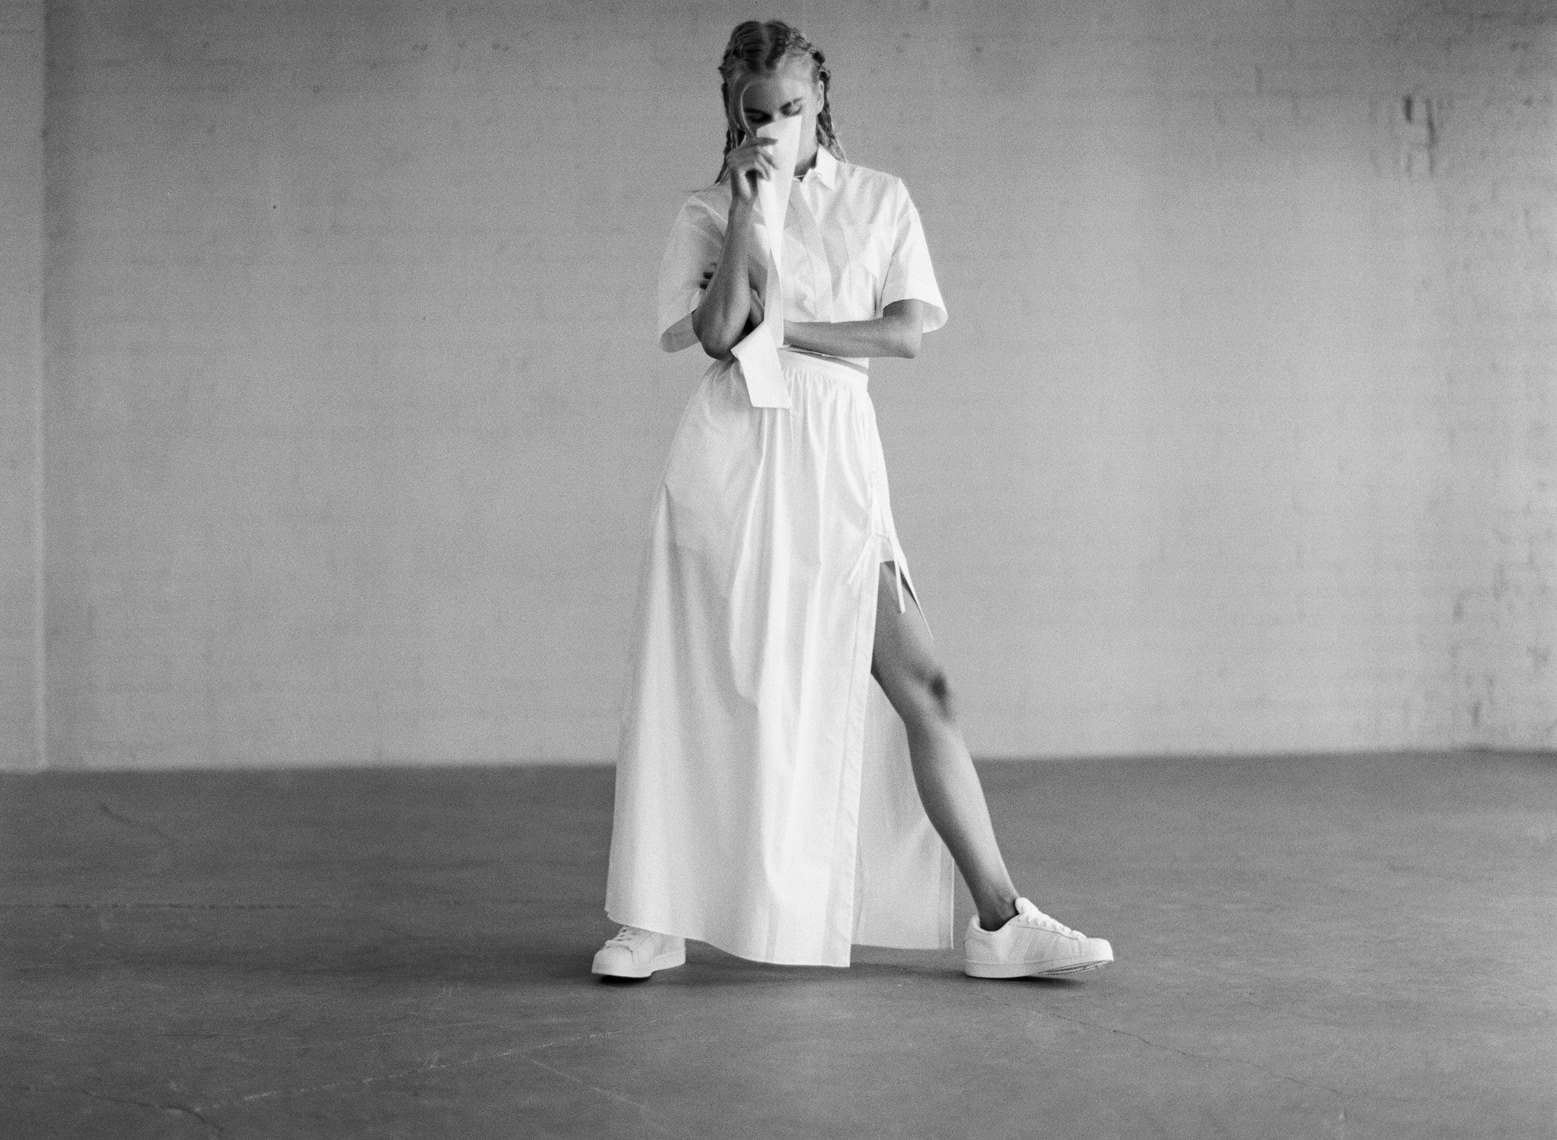 005_Lemoine-000018870009aBlackandWhite_Portraits_Women_Fashion